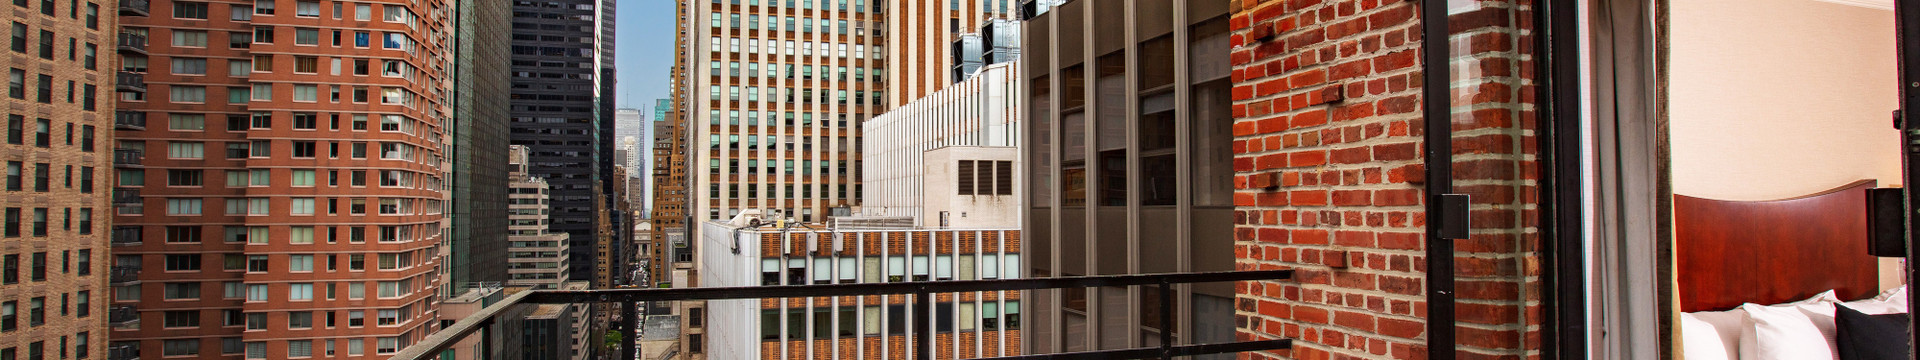 A View from our Midtown Manhattan Hotel Suites | Westgate New York Grand Central Hotel | New York City Hotel Suites for Families